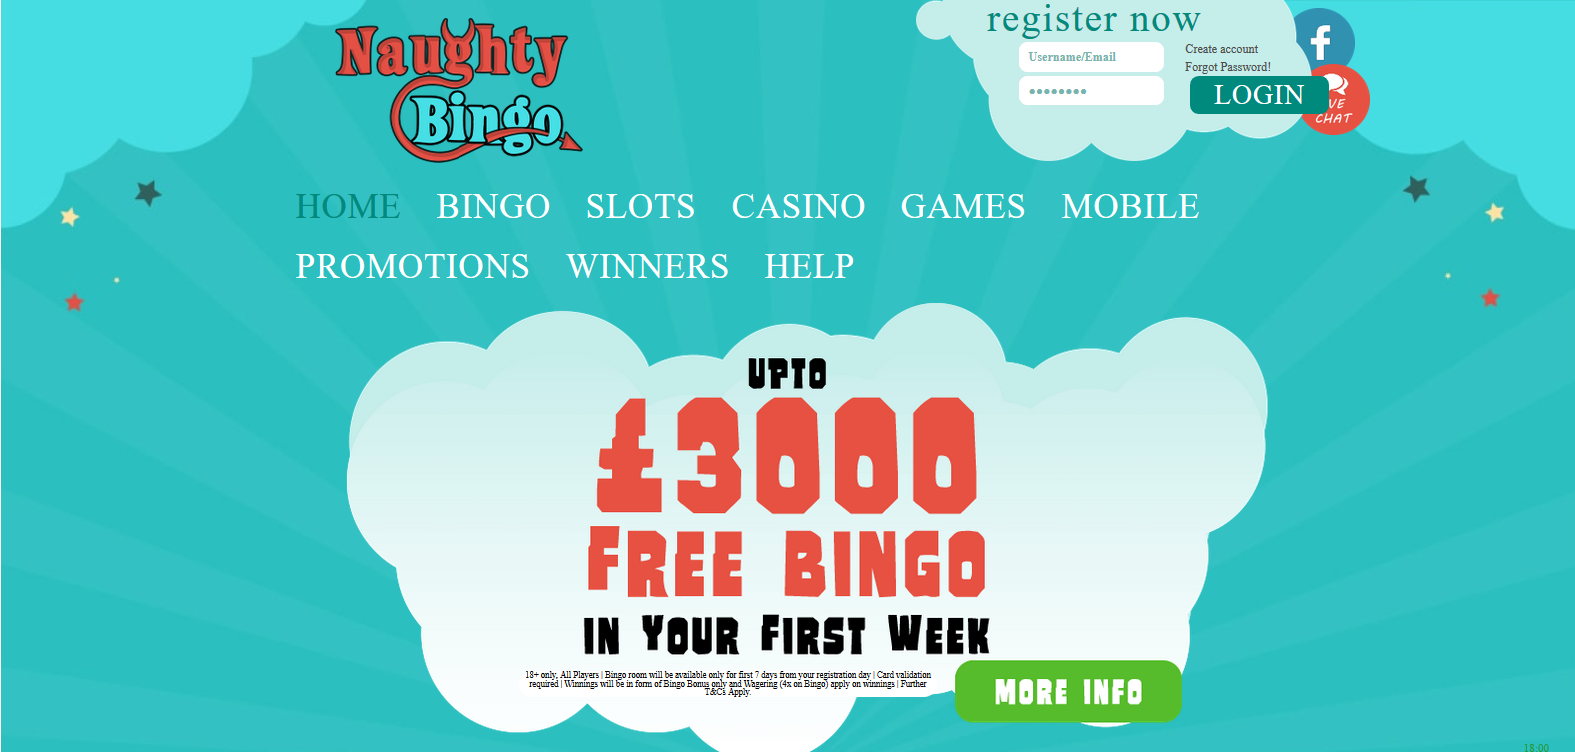 UK Bingo and Casino Games - Naughty Bingo